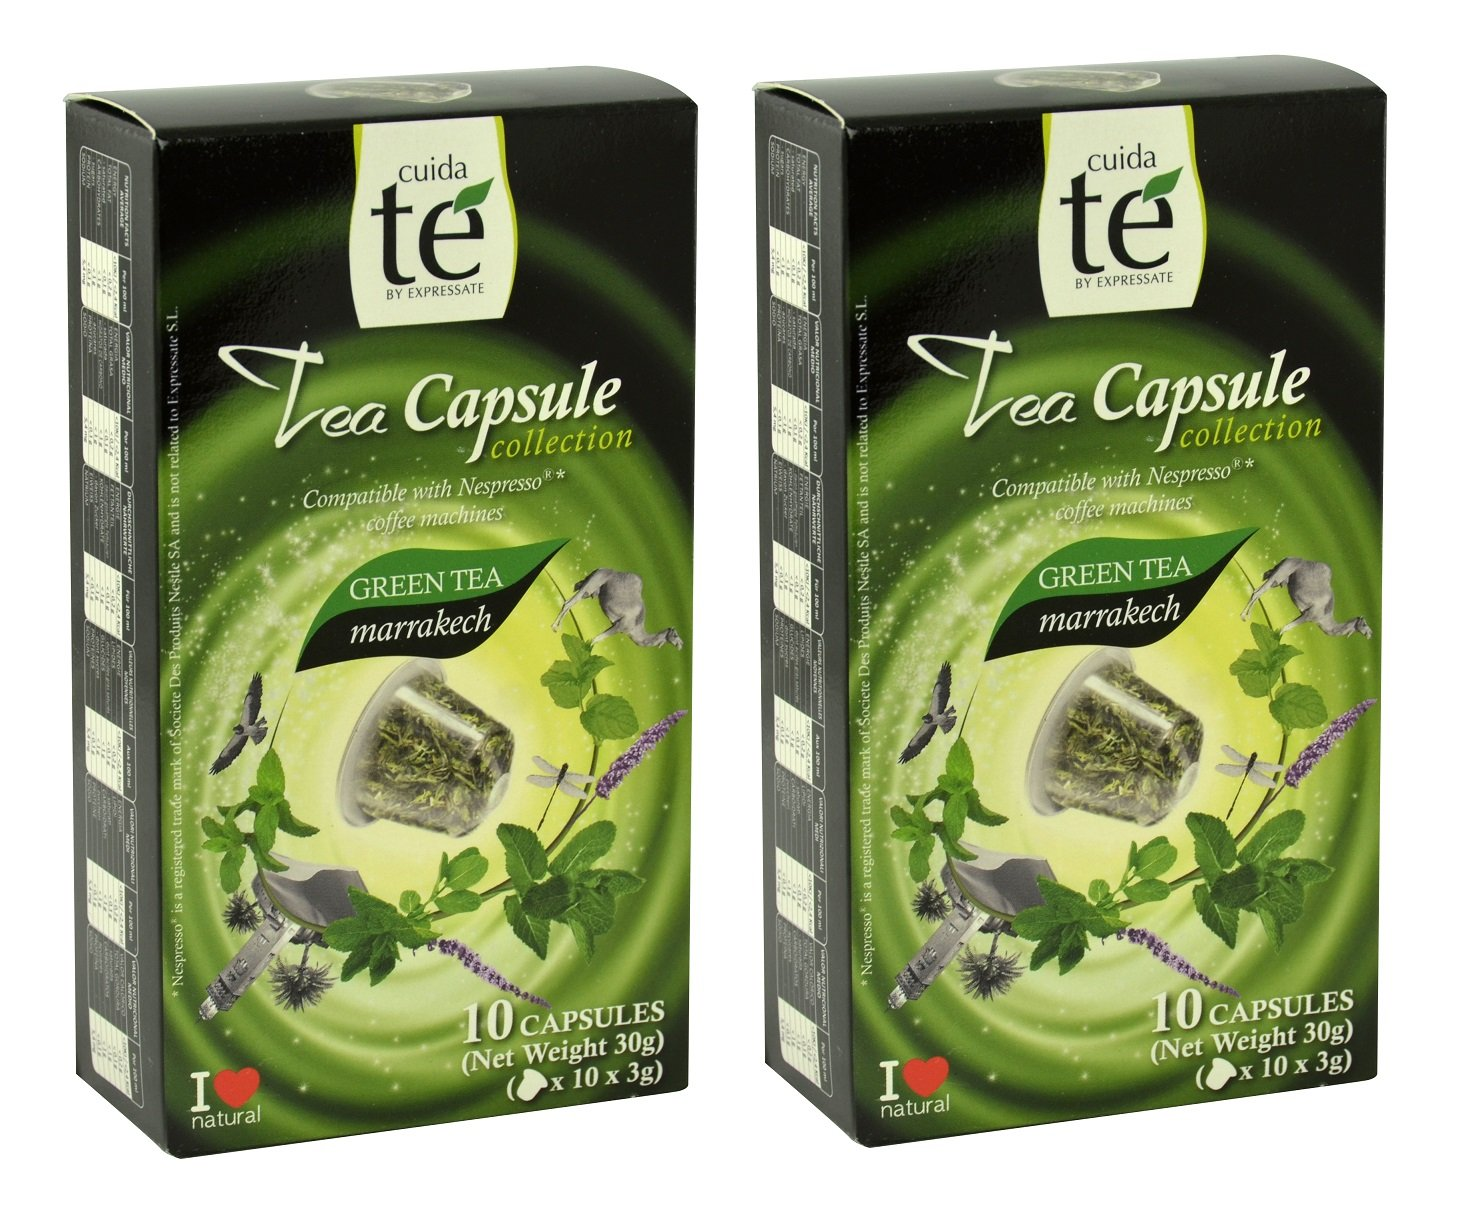 20 Nespresso Compatible Tea Pods - Marrakech Green Tea, 2 Boxes - 10 Pods / Box: Amazon.com: Grocery & Gourmet Food